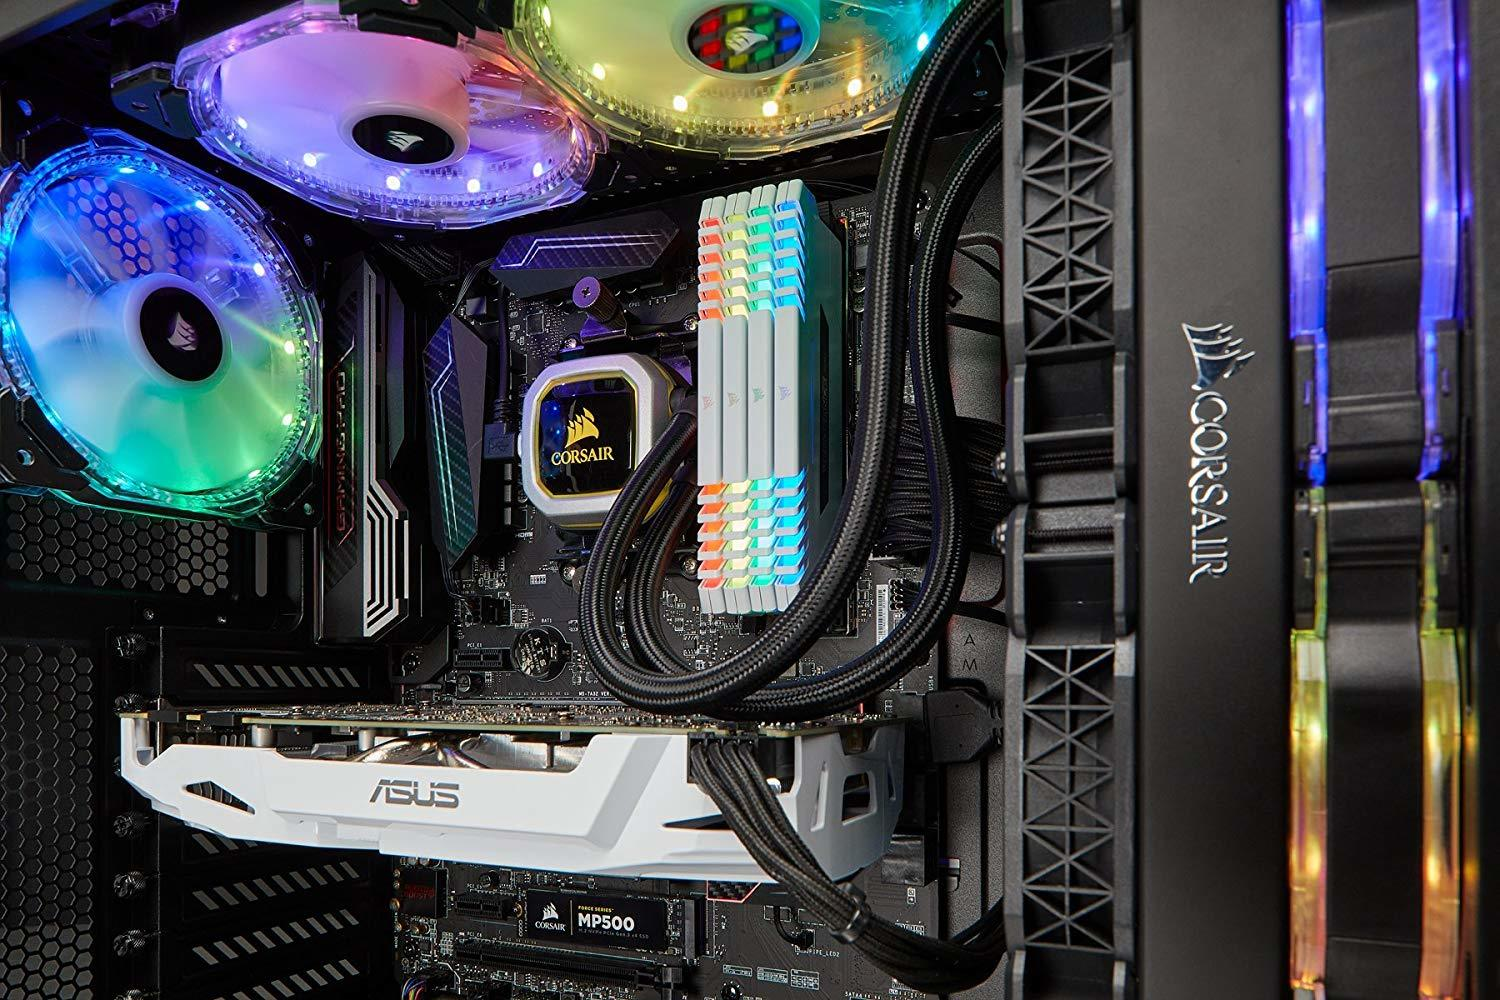 Corsair Hydro Series H100i Pro At Mighty Ape Australia V2 Water Cooler Image